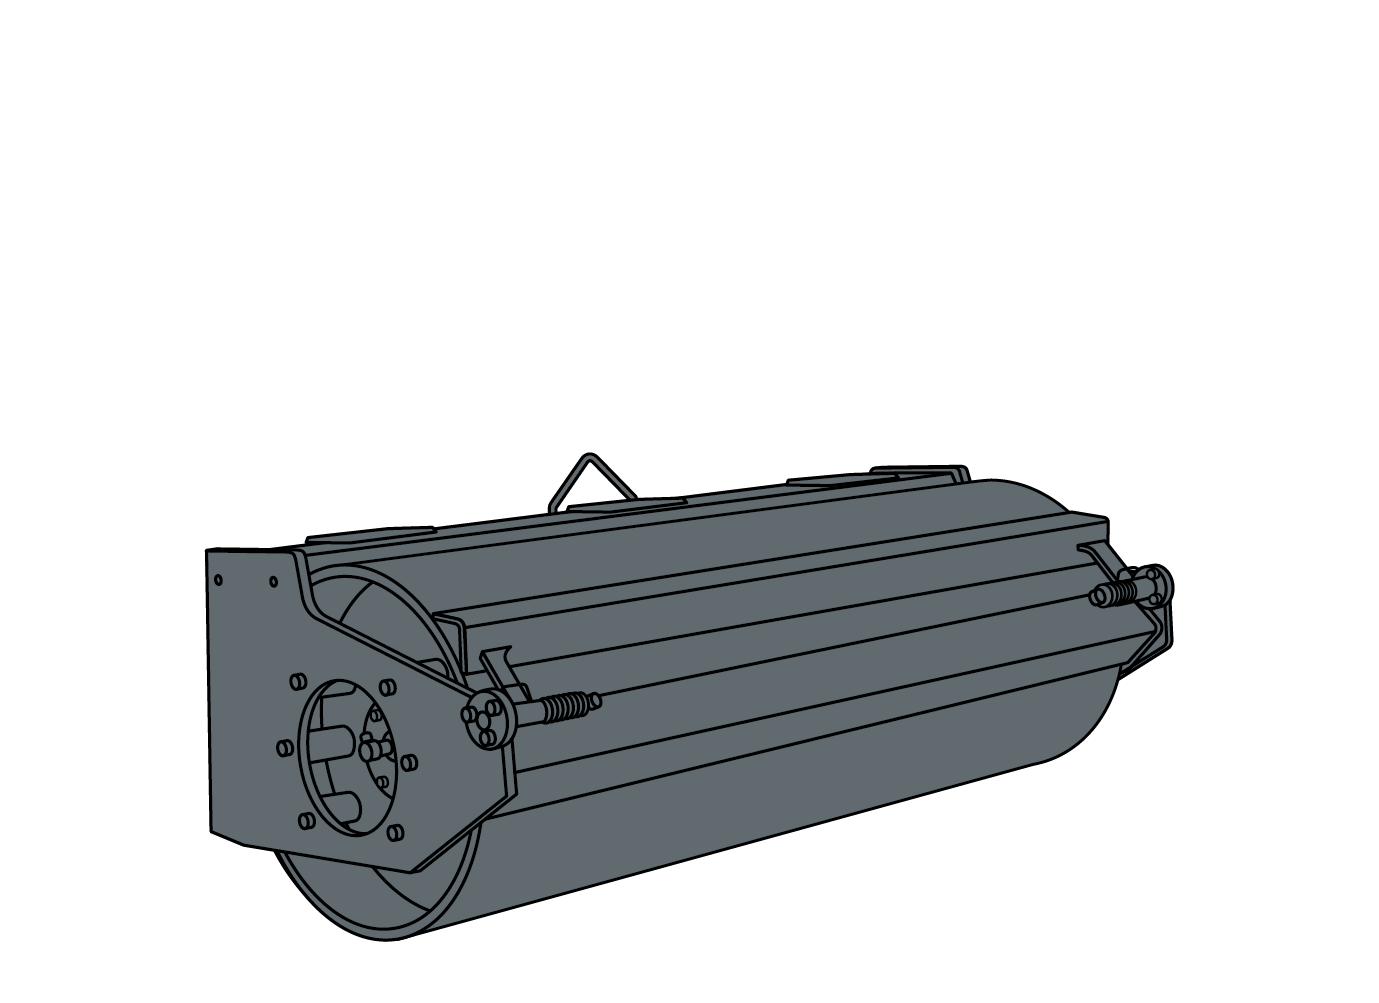 VIBRATORY ROLLER illustration